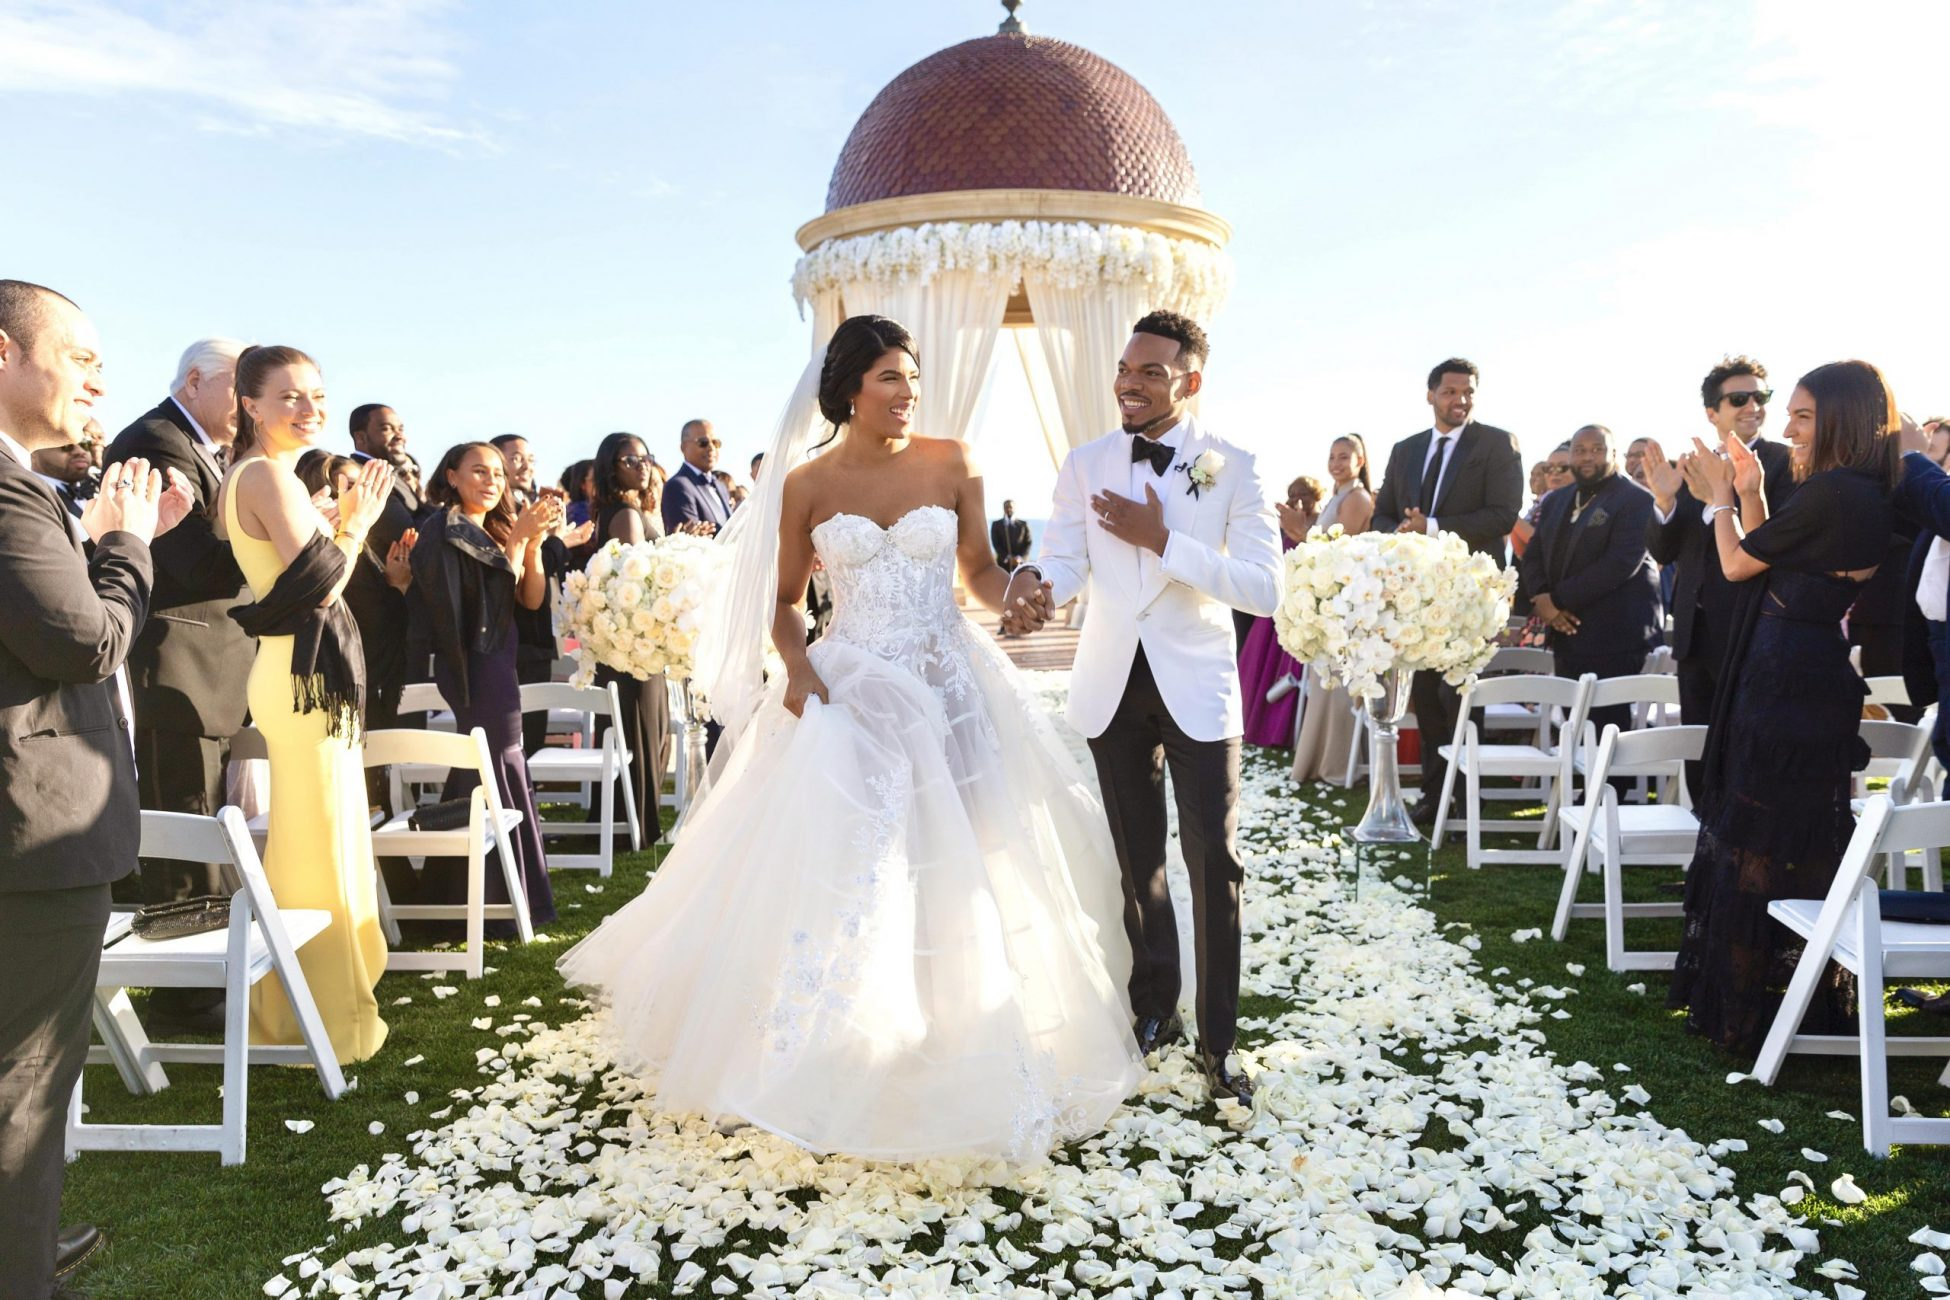 pelican hill wedding ceremony, pelican hill weddings, pelican hill wedding videographers, orange county wedding venues, orange county wedding videographers, wedding processional, c&k, pelican hill rotunda, southern california wedding videographers,